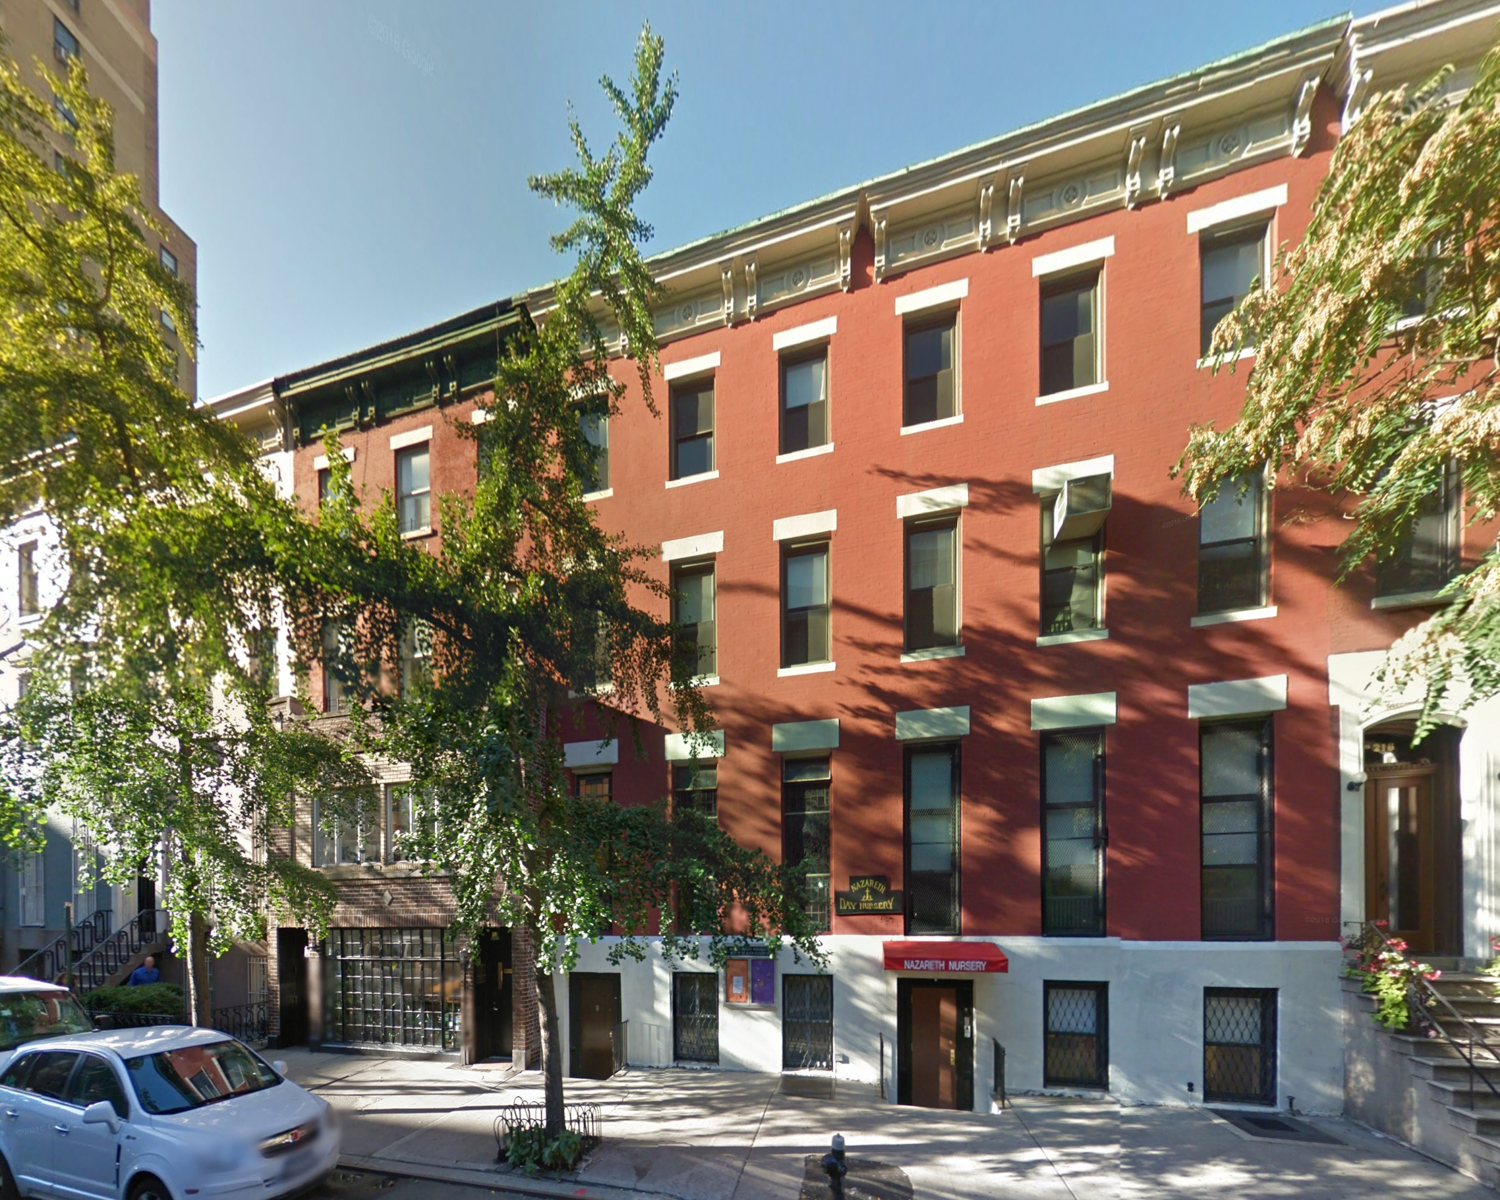 214 West 15th Street, via Google Maps